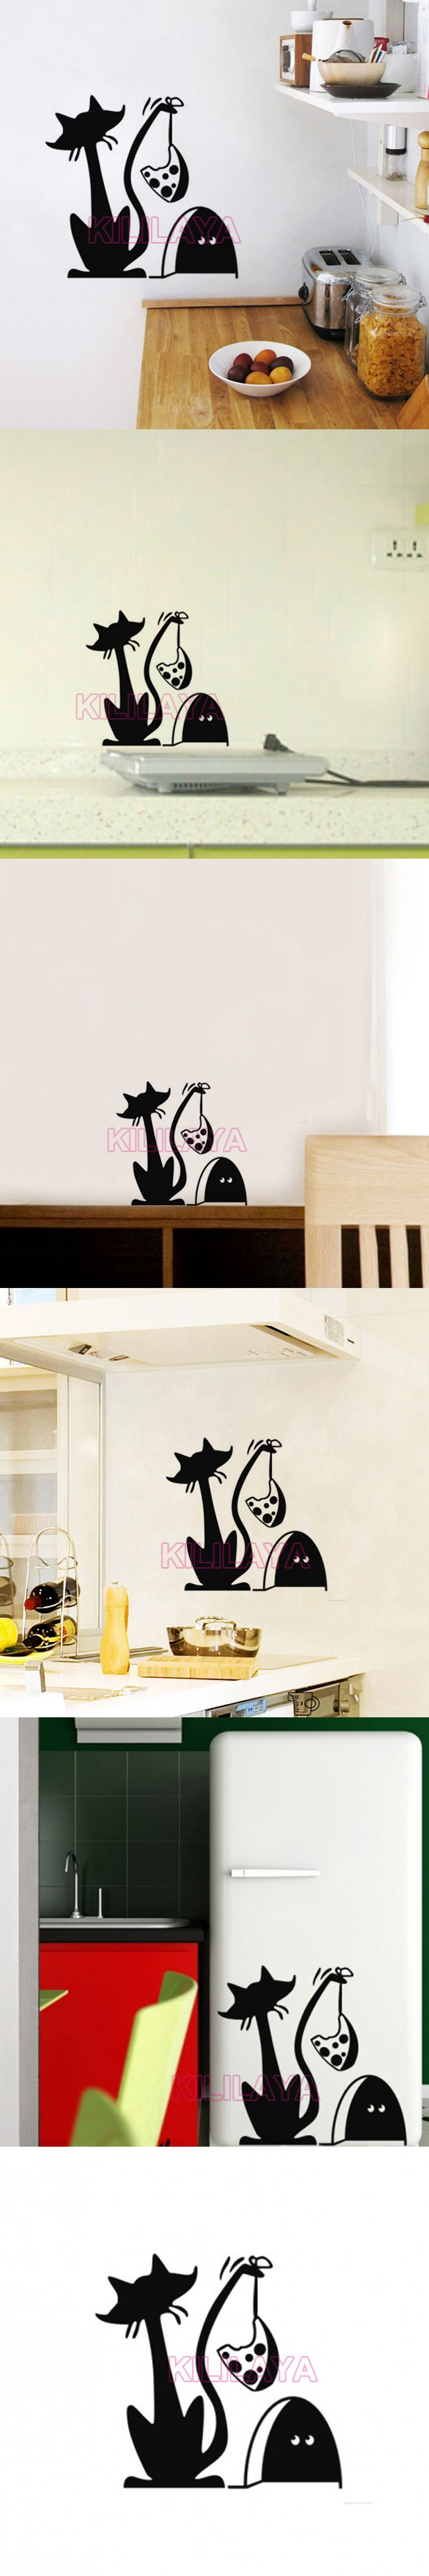 Funny Cat and Mouse Trap Vinyl Wall Decals Wallpaper for Kids Living Room Fridge Mural Wall Sticker Art Home Decor Decoration $7.99